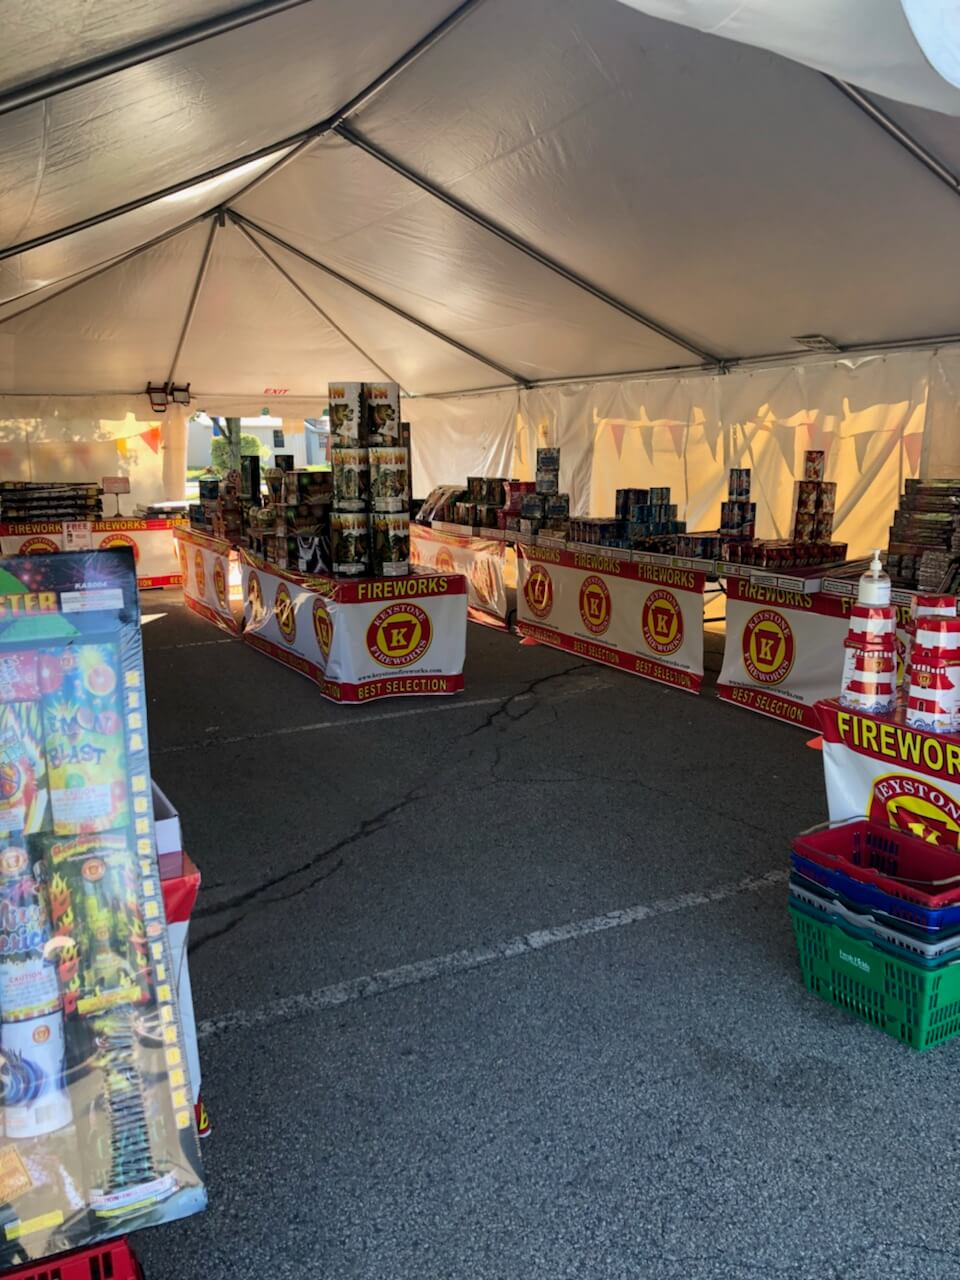 Photo of inside a fireworks tent with fireworks selections on tables